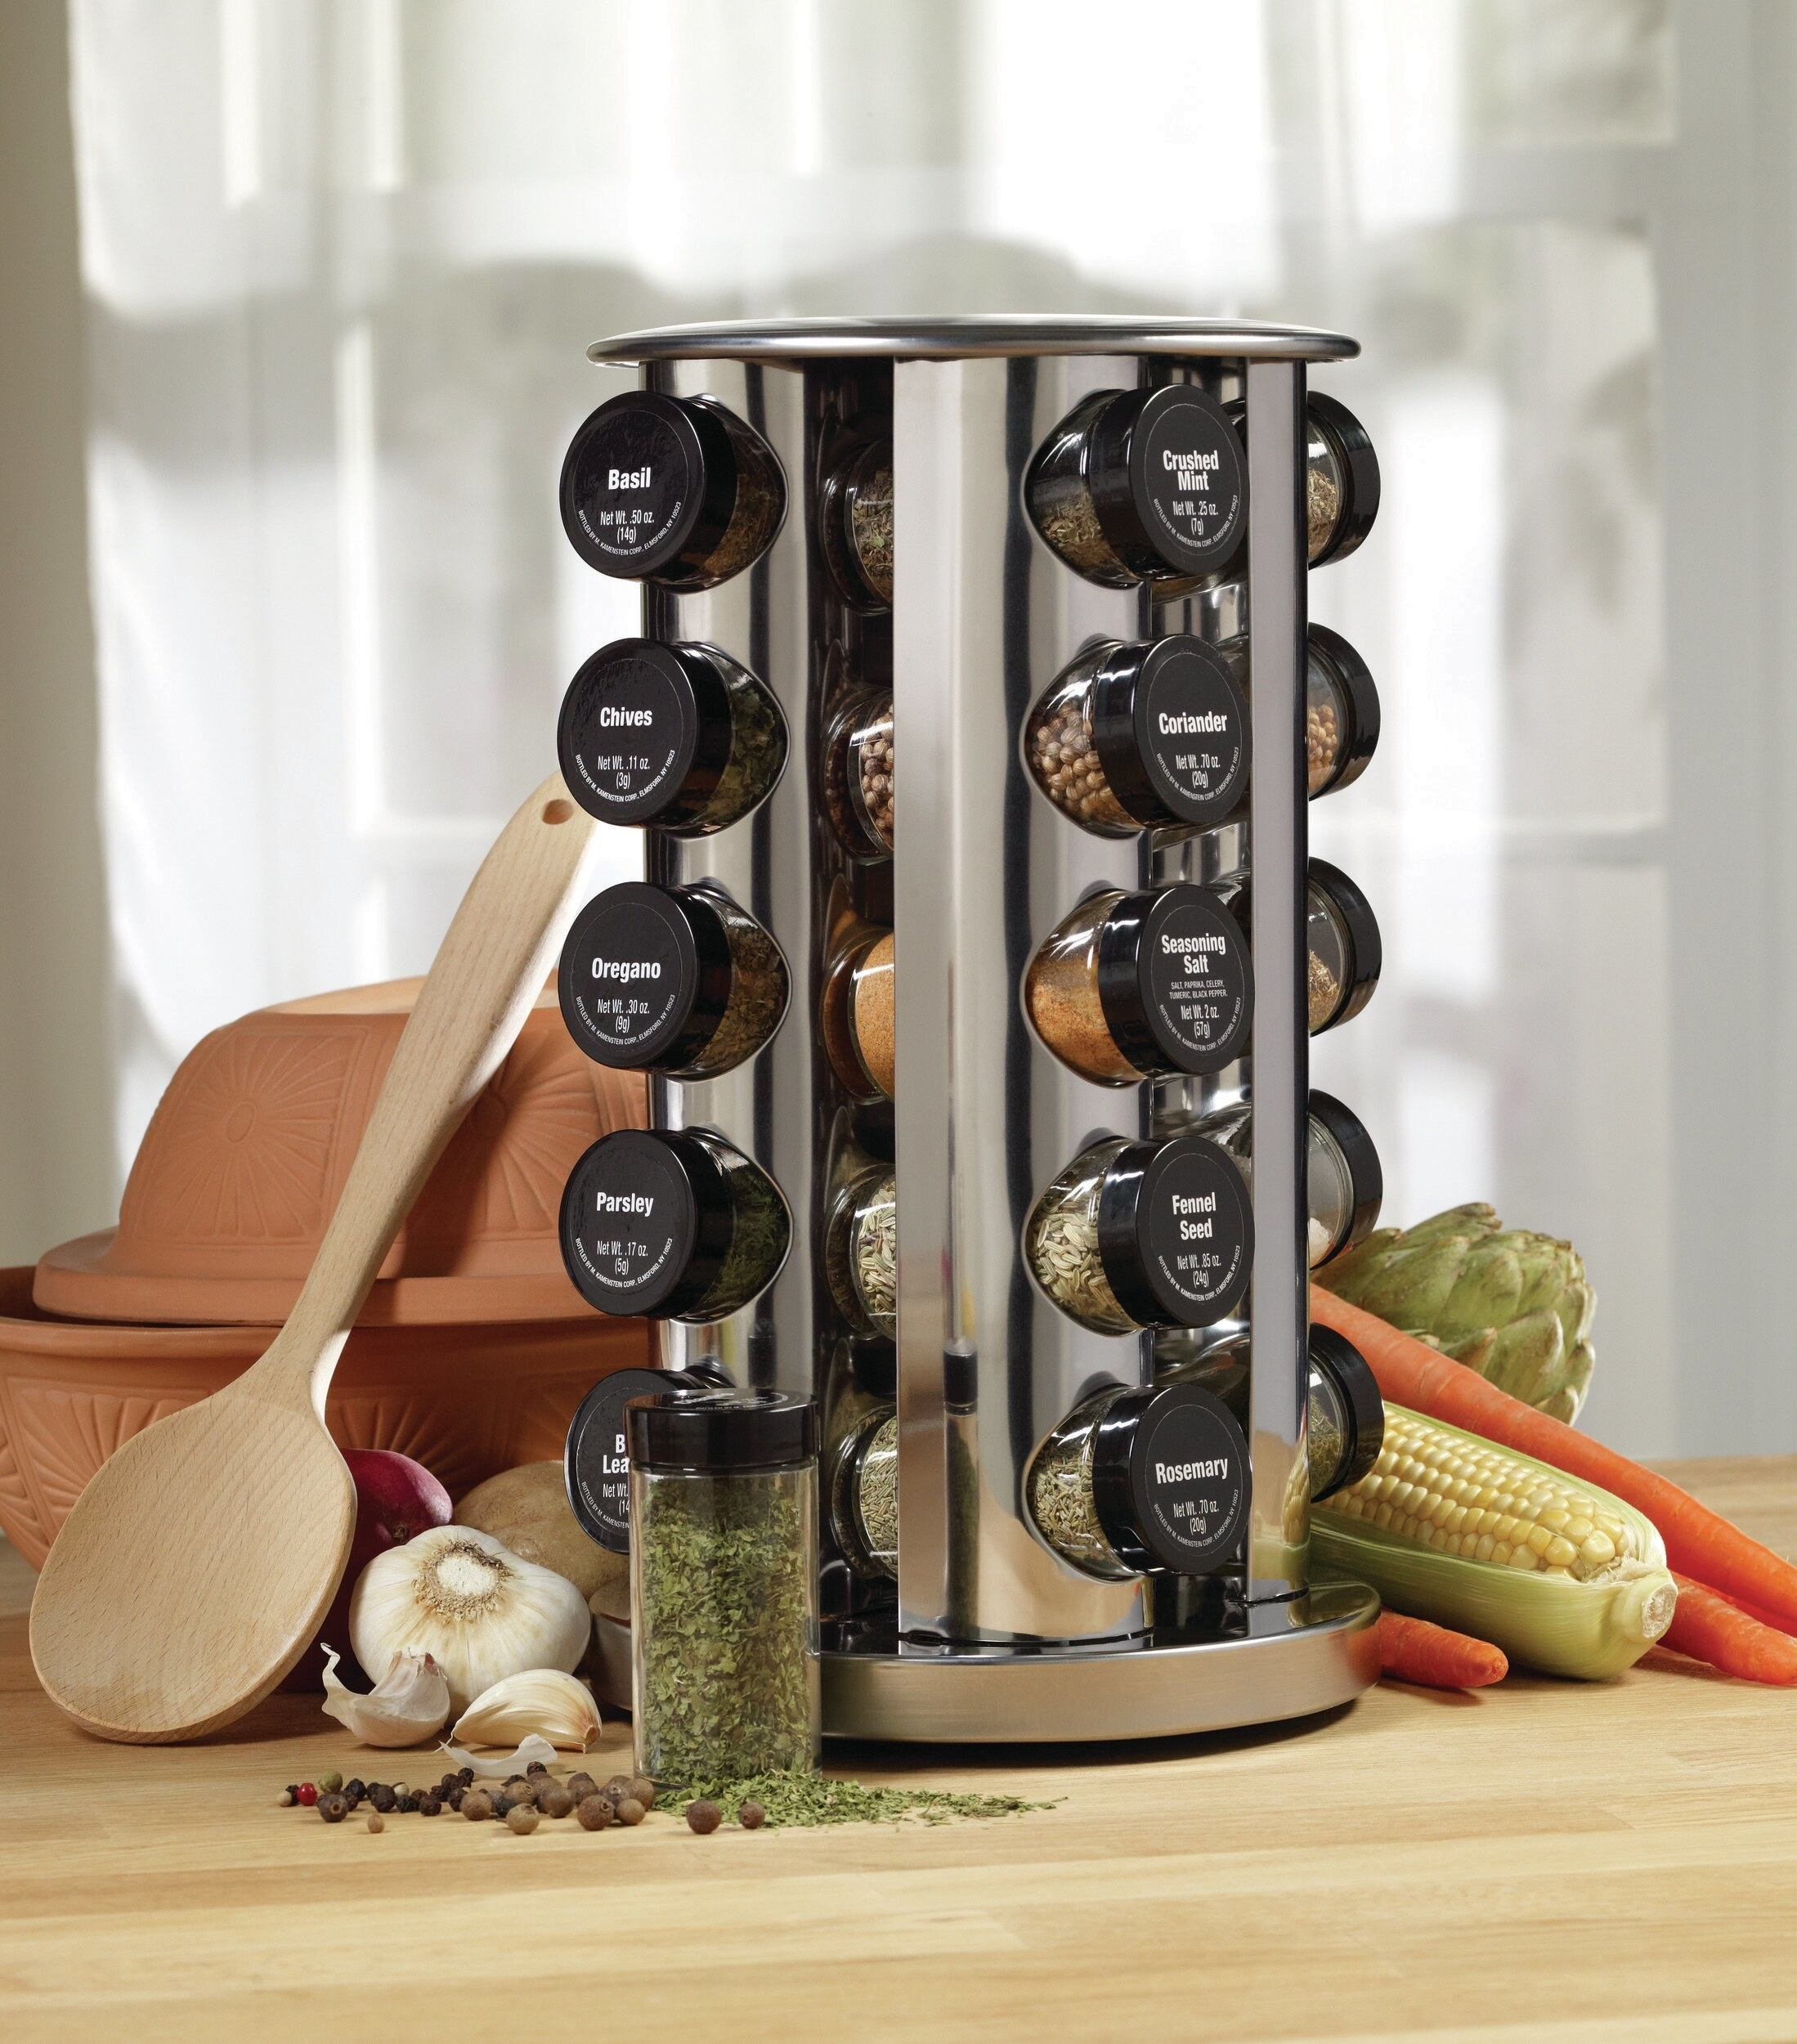 The metal revolving spice rack with clear jars with black labeled lids sitting five to a row